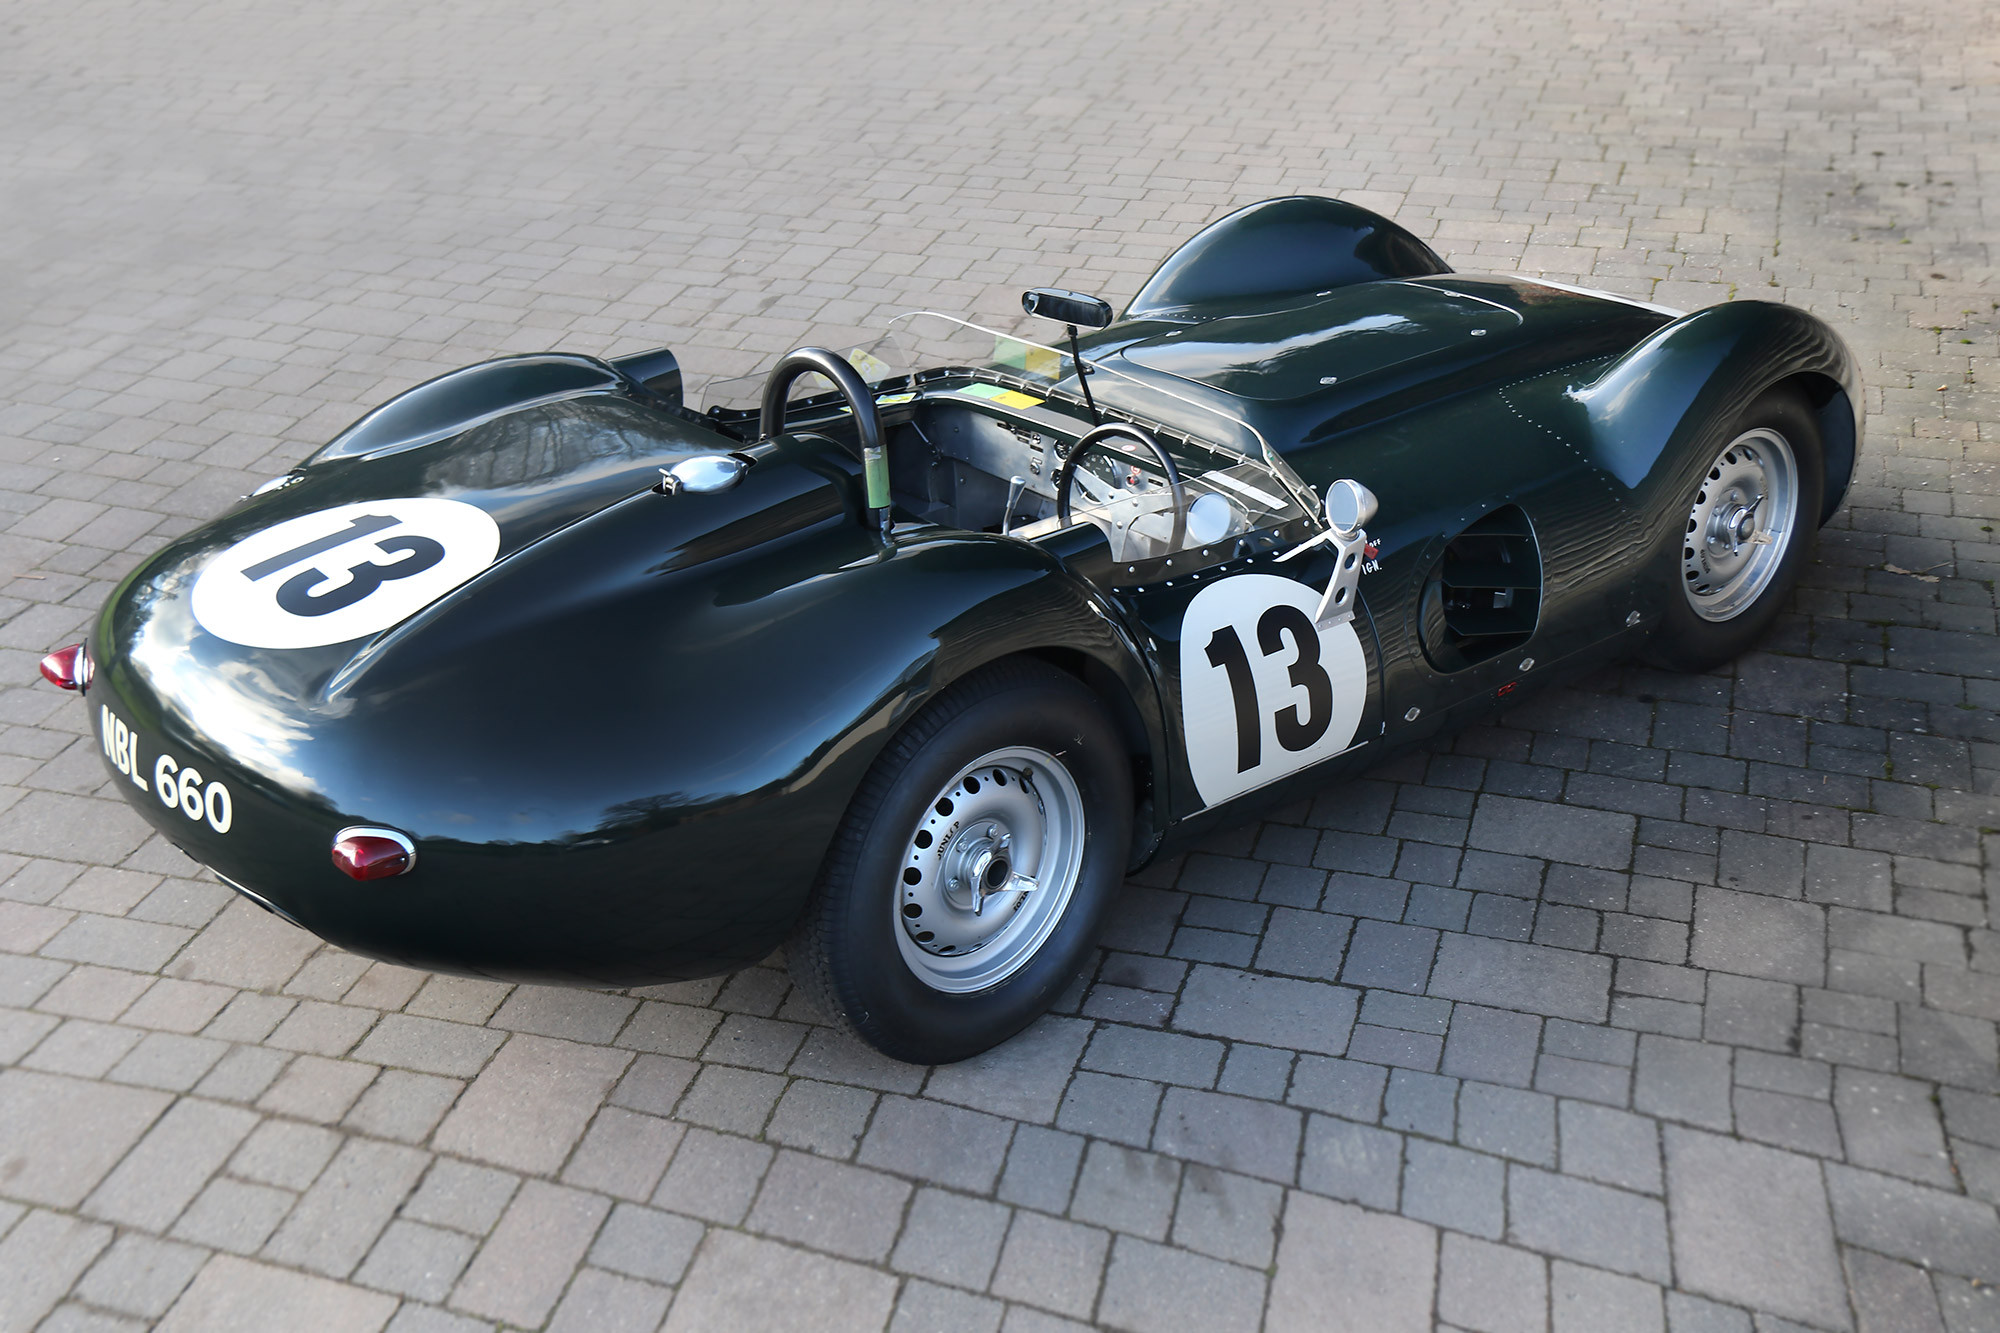 'Most successful' Lister Jaguar Knobbly, owned by Peter Whitehead, for sale